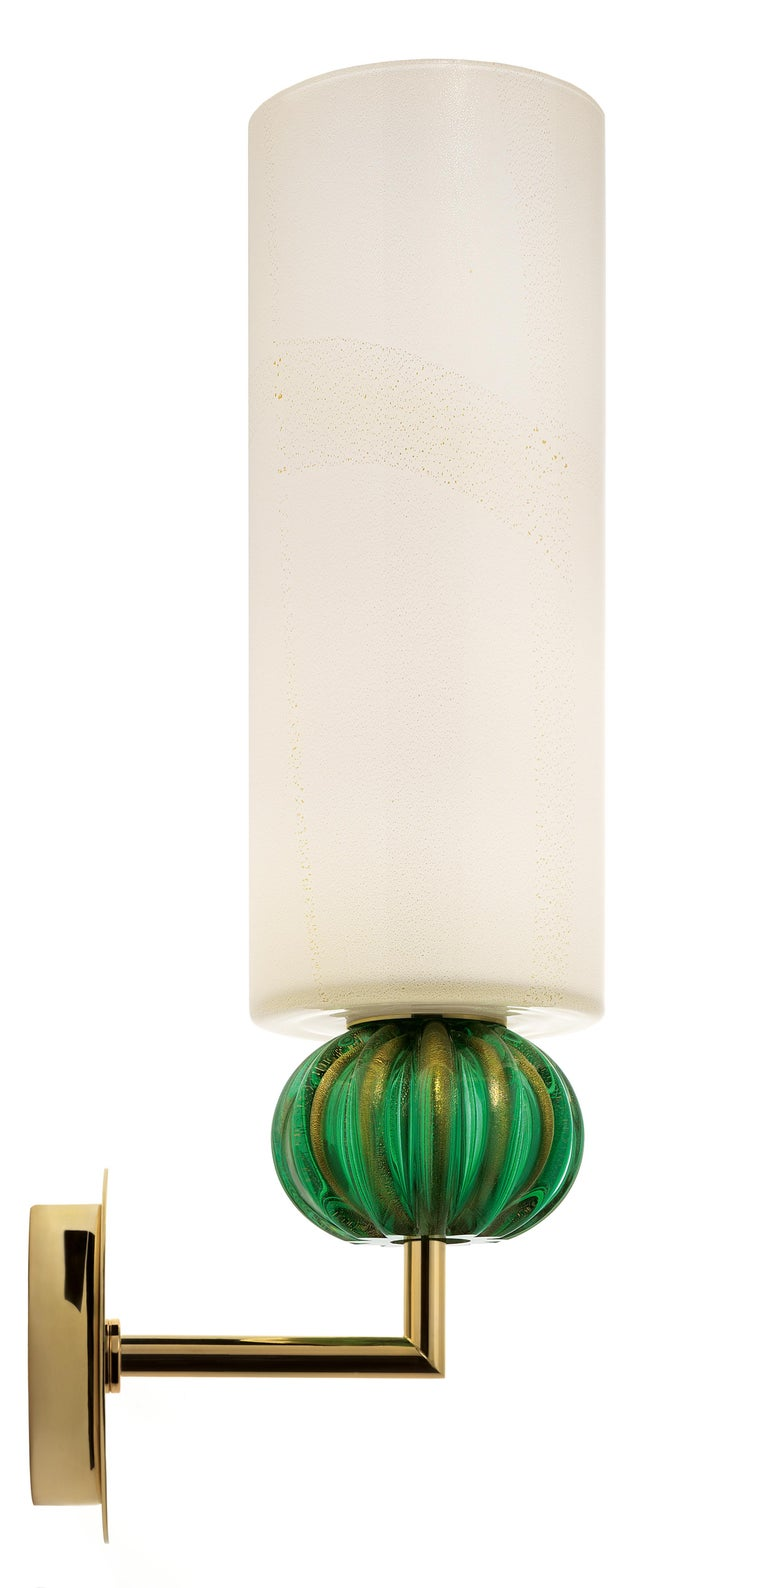 For Sale: Green (Beige Gold/Gold Green_OW) Gallia 5627 Wall Sconce in Glass, by Barovier & Toso 2